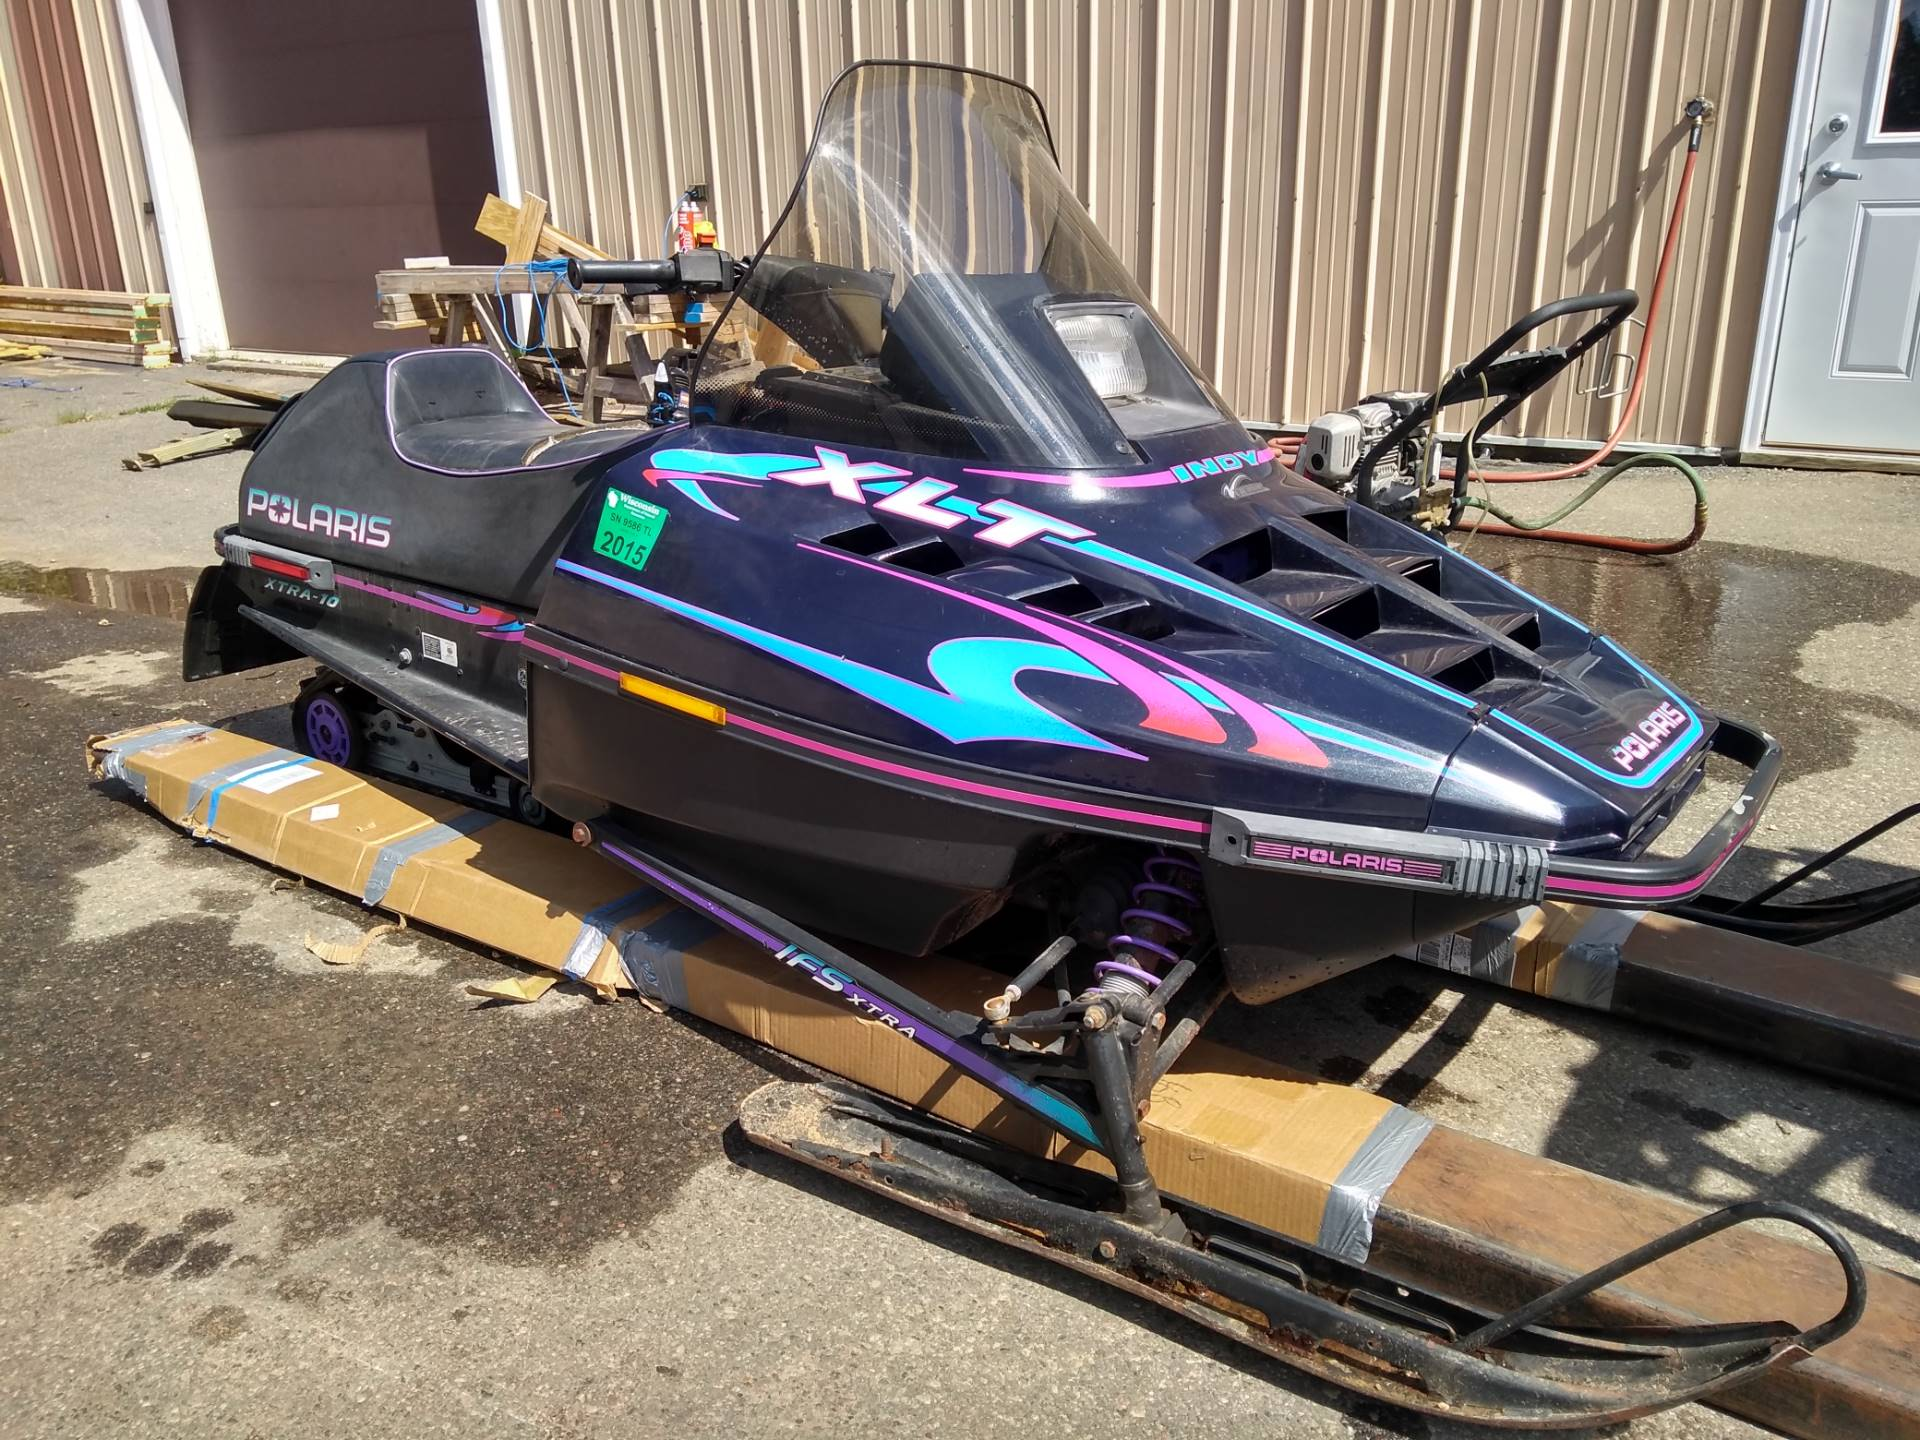 1997 Polaris XLT in Three Lakes, Wisconsin - Photo 2